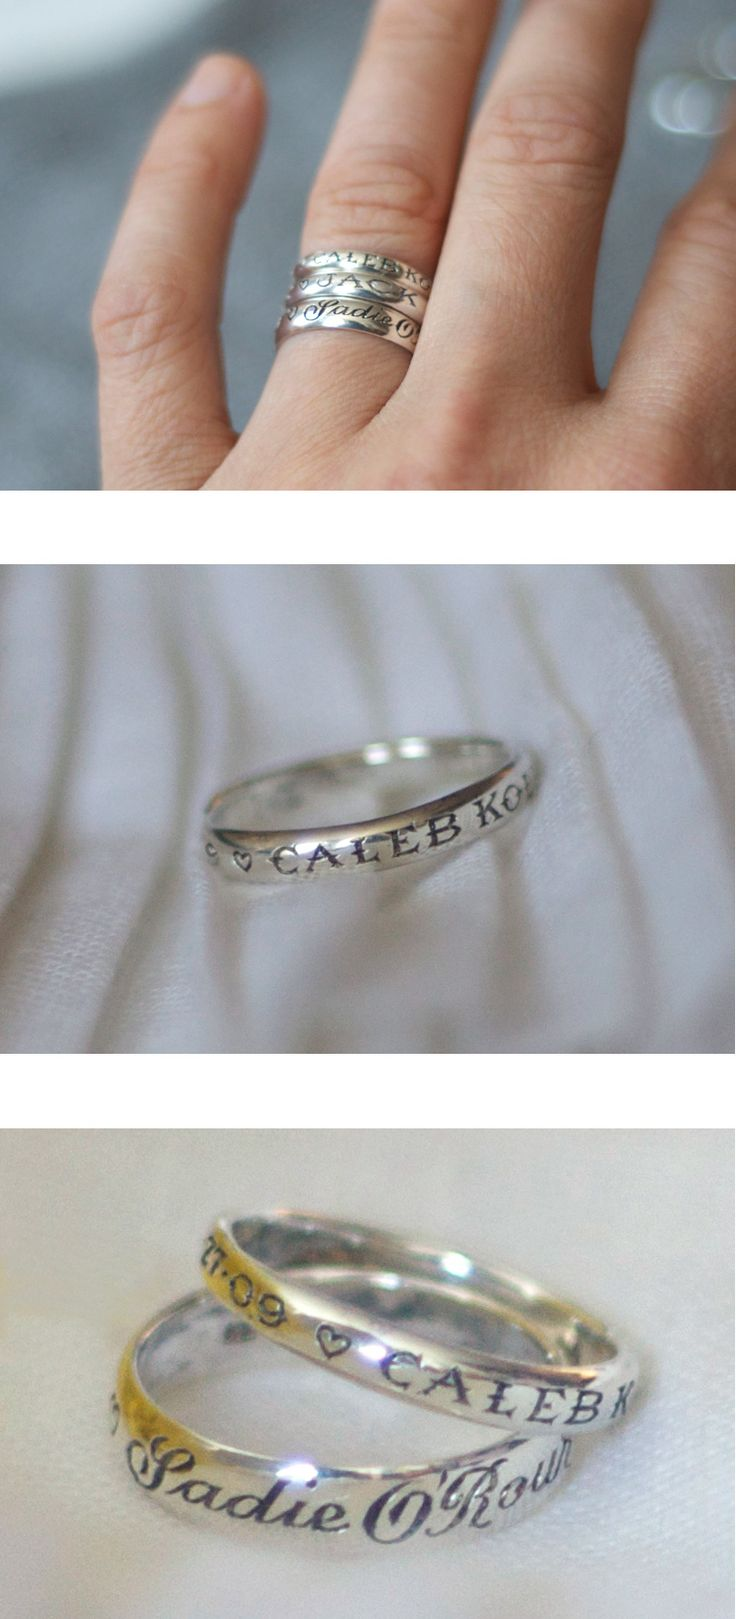 Child's name and date of birth on the ring want!!!